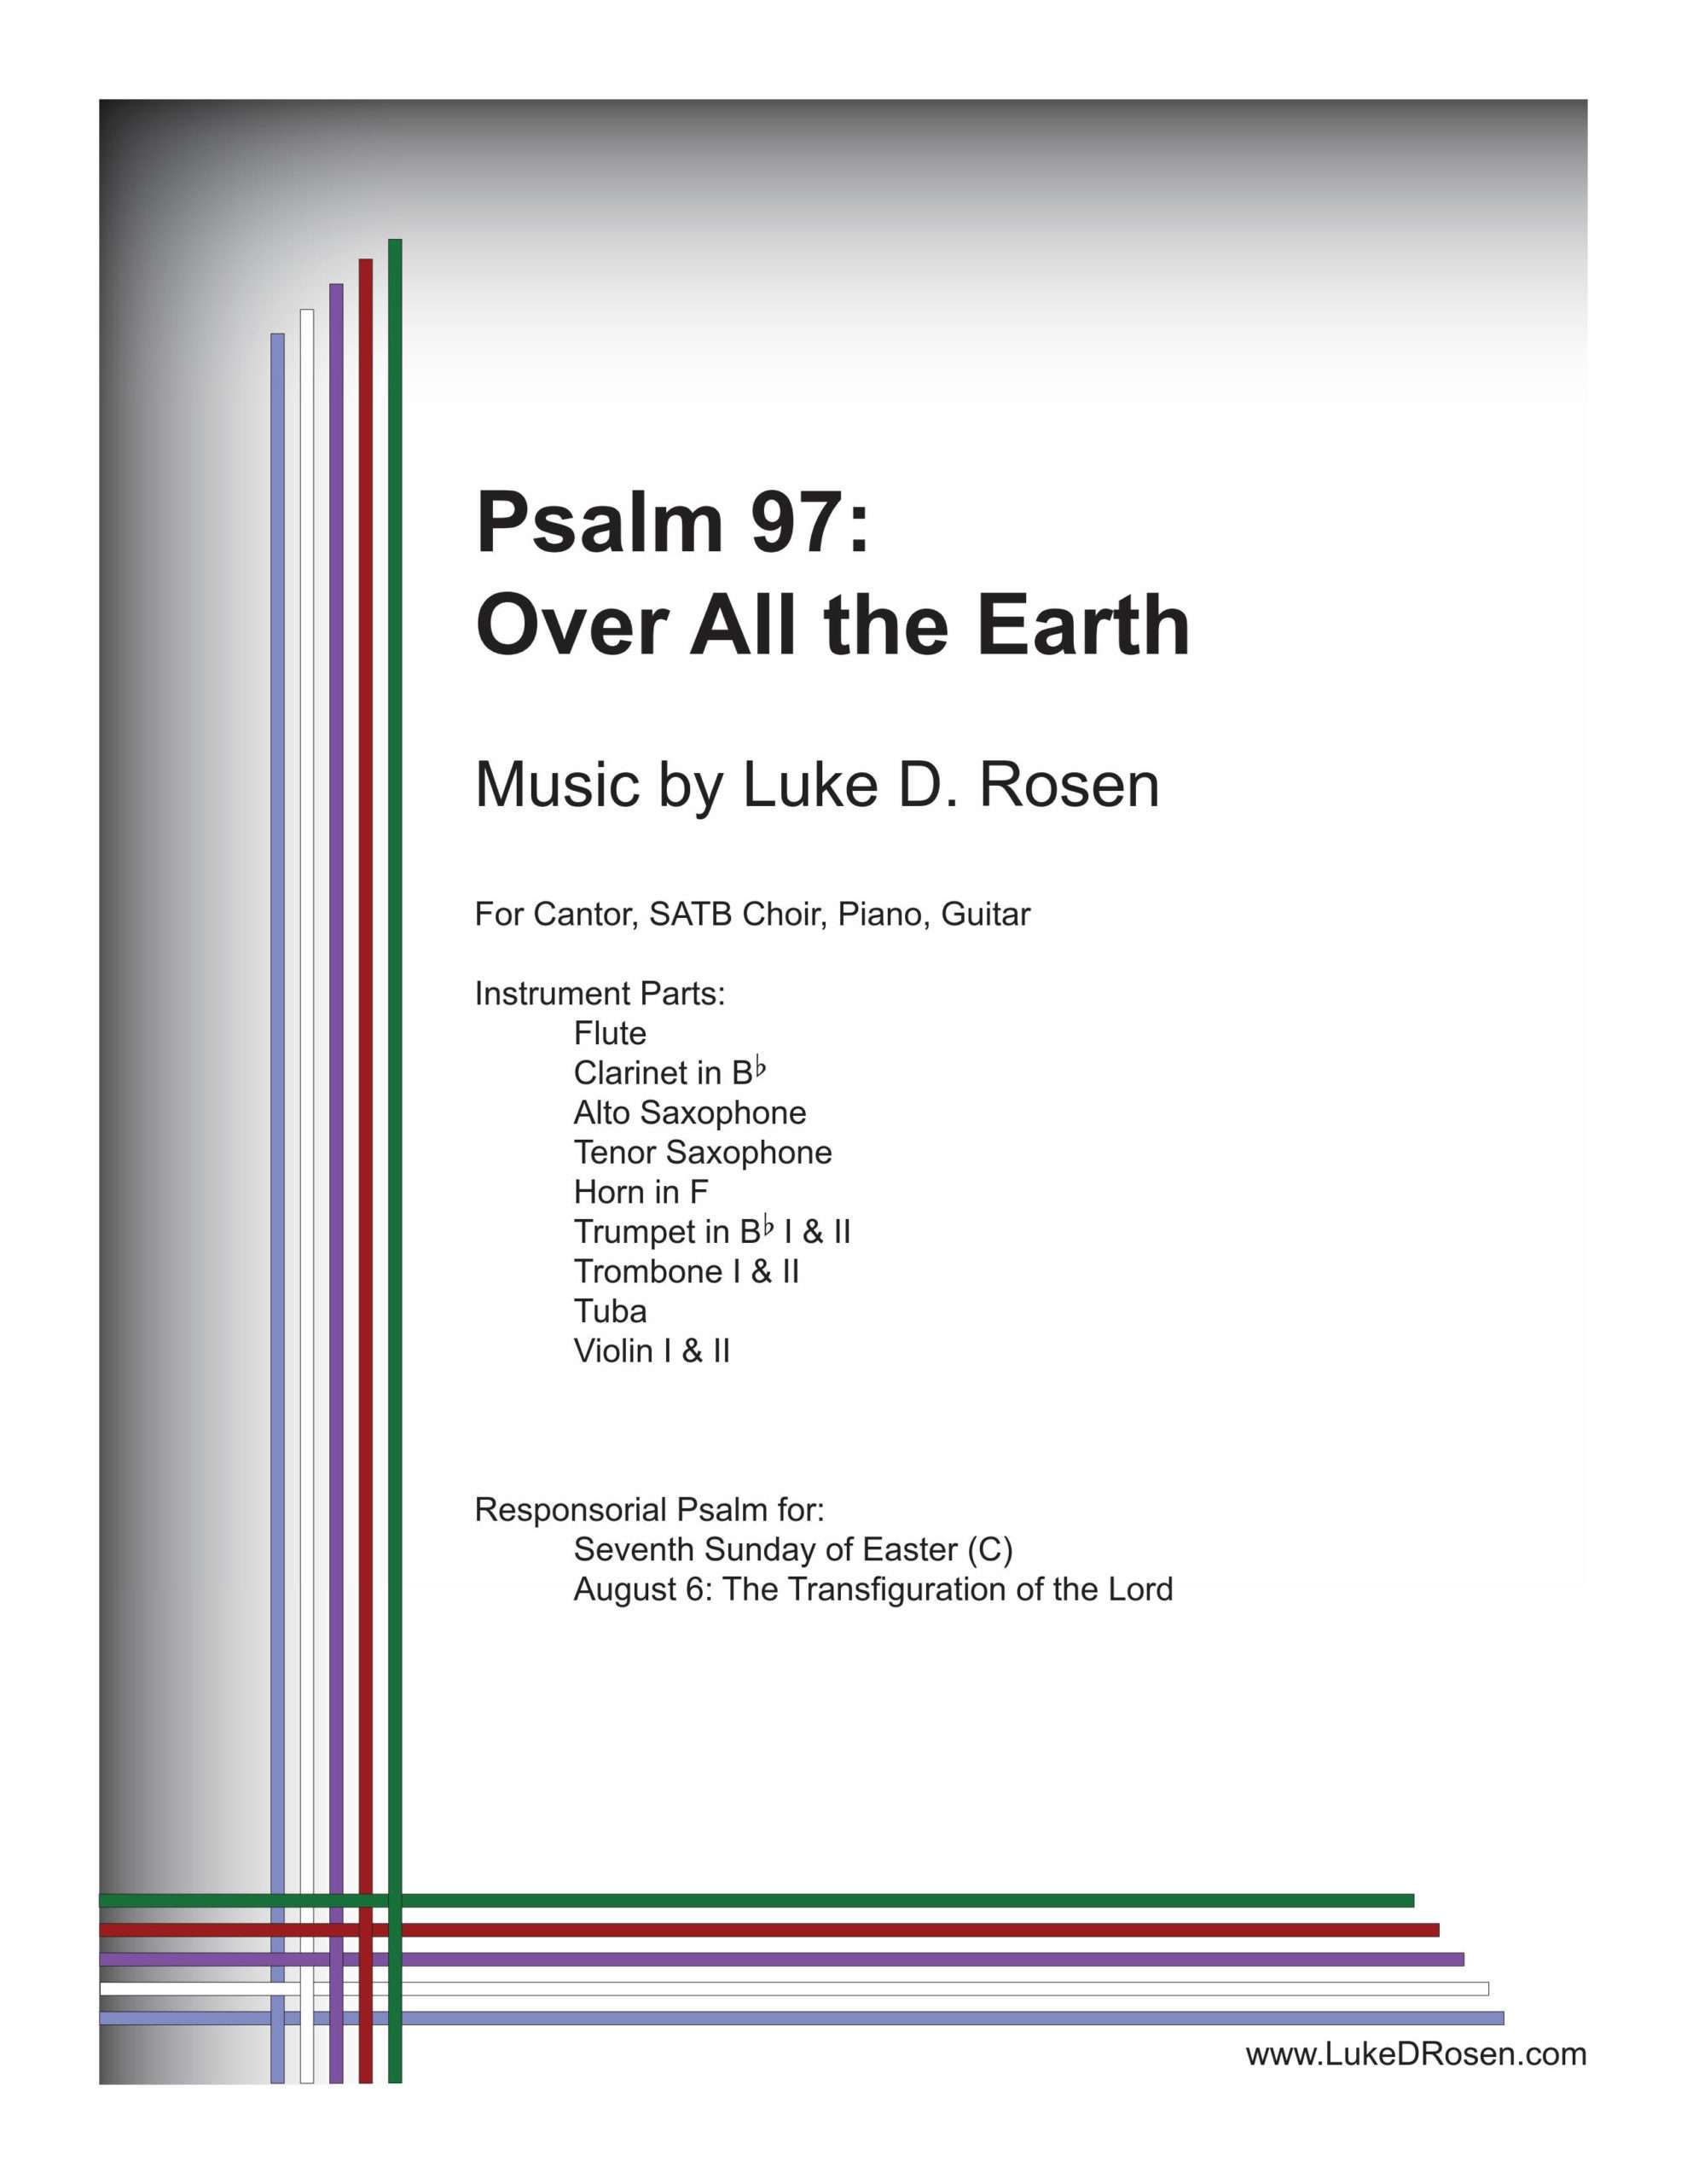 Psalm 97 Over All the Earth Rosen Sample Complete PDF 1 png